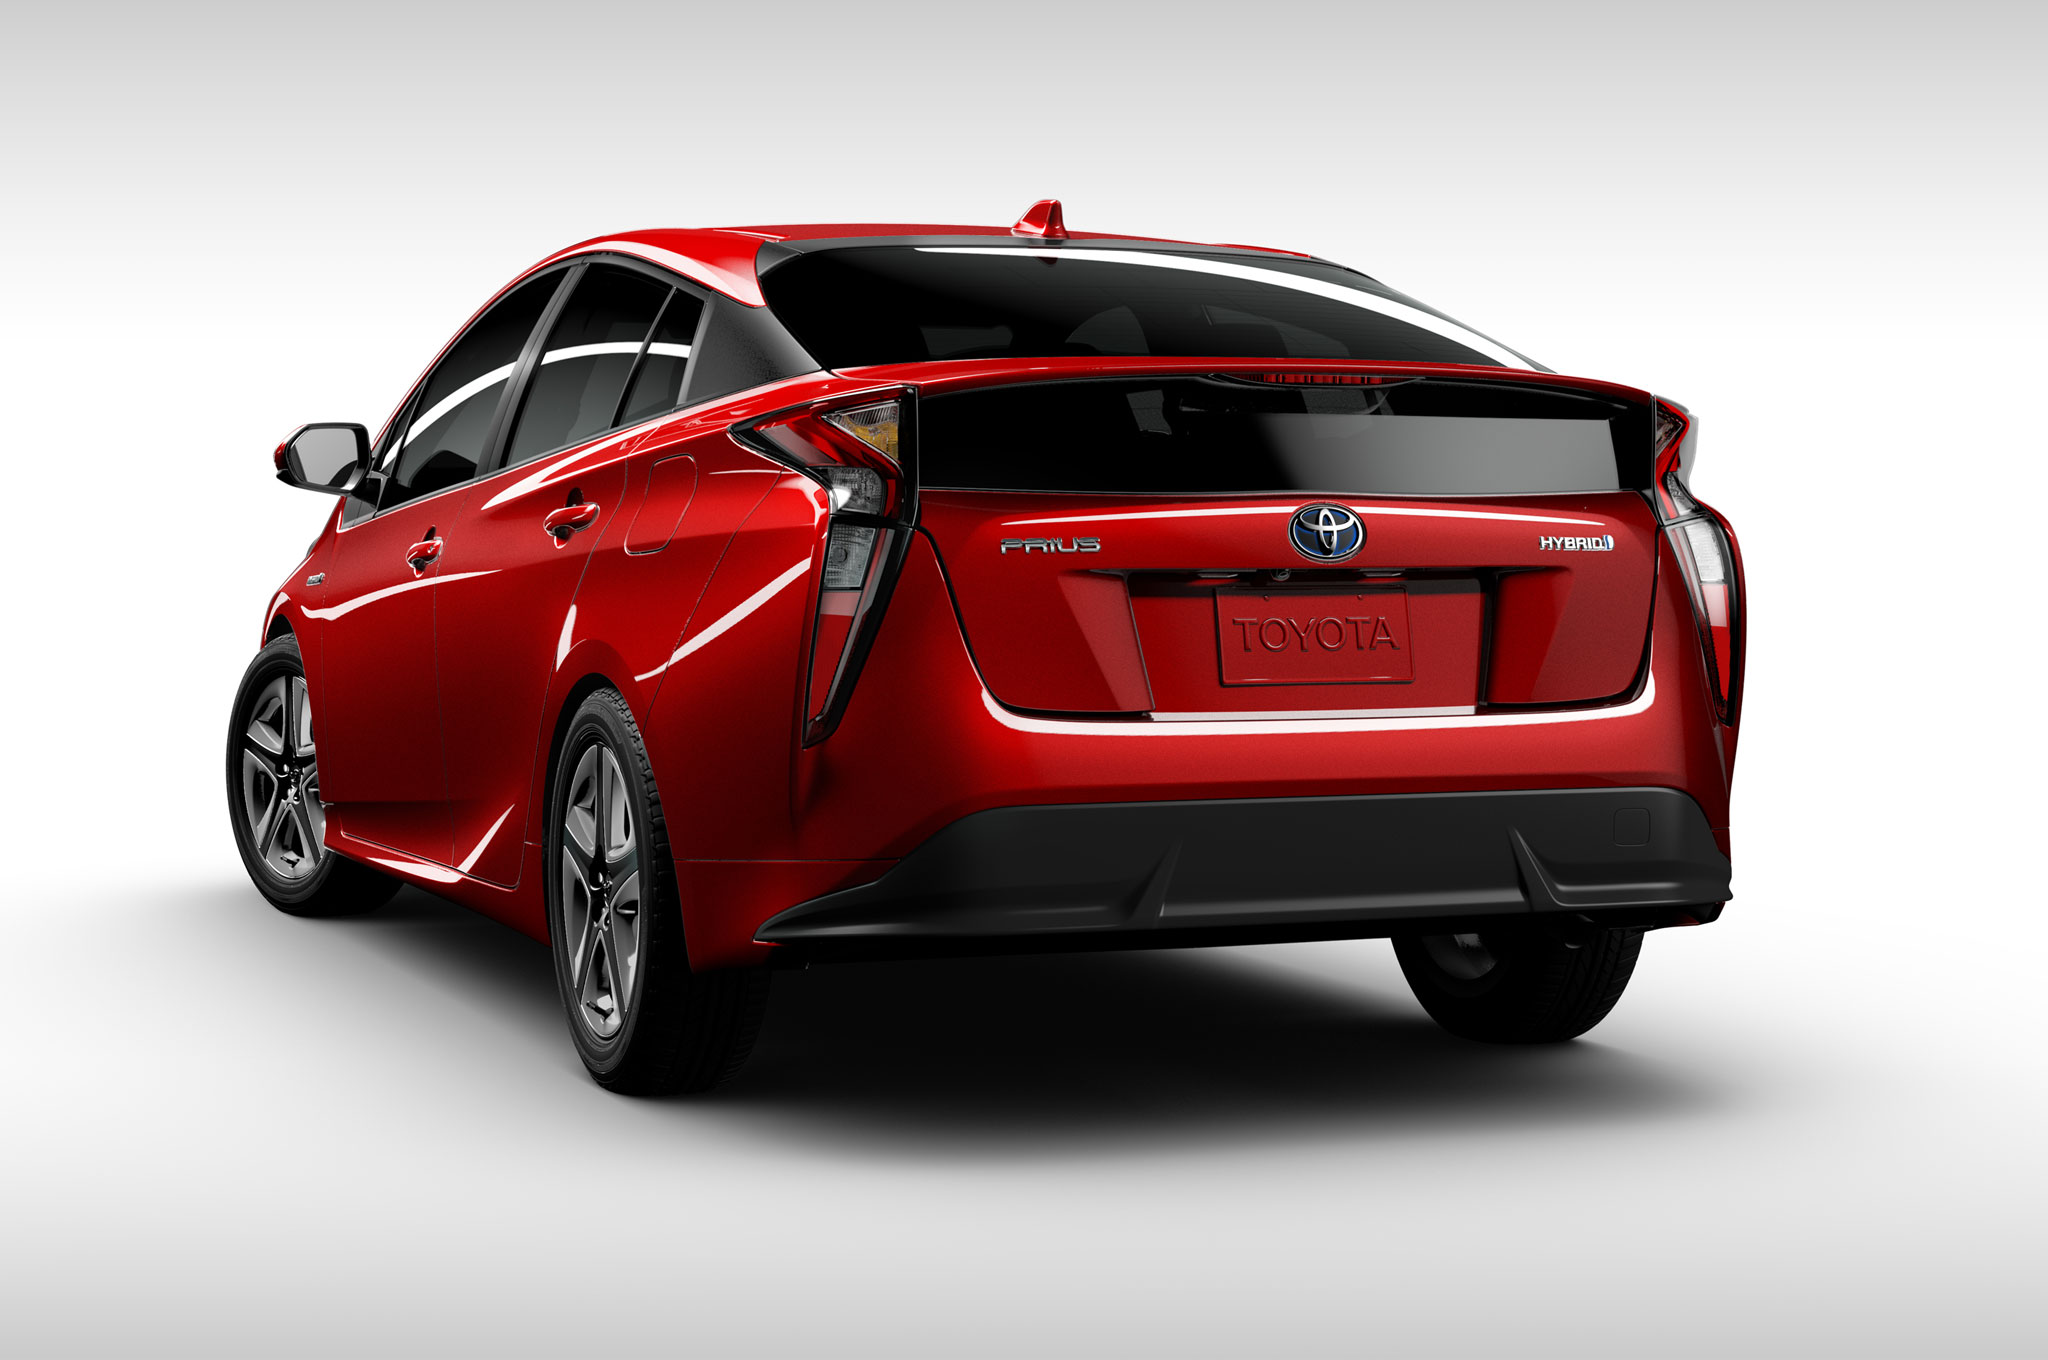 2016-toyota-prius-rear-view-wheels-turns